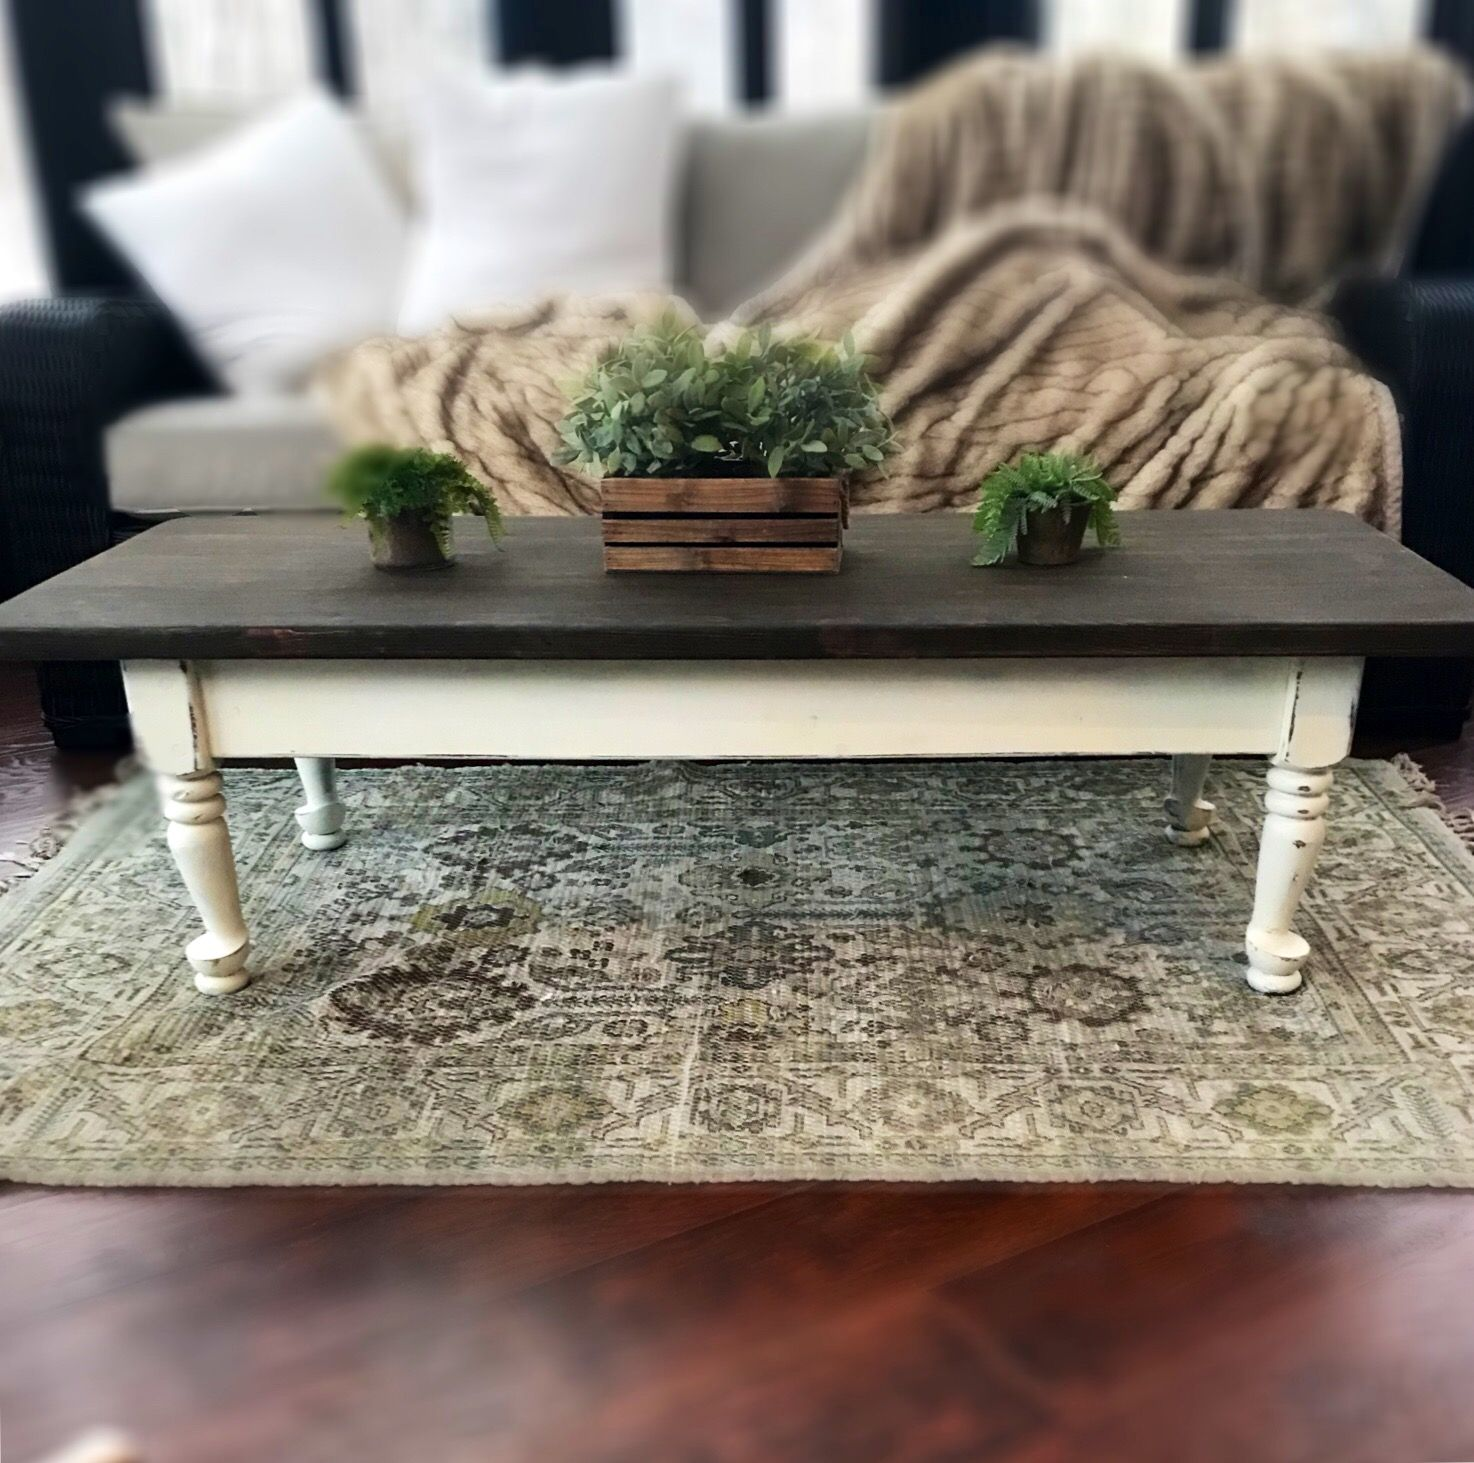 Farmhouse coffee table rustic wooden table